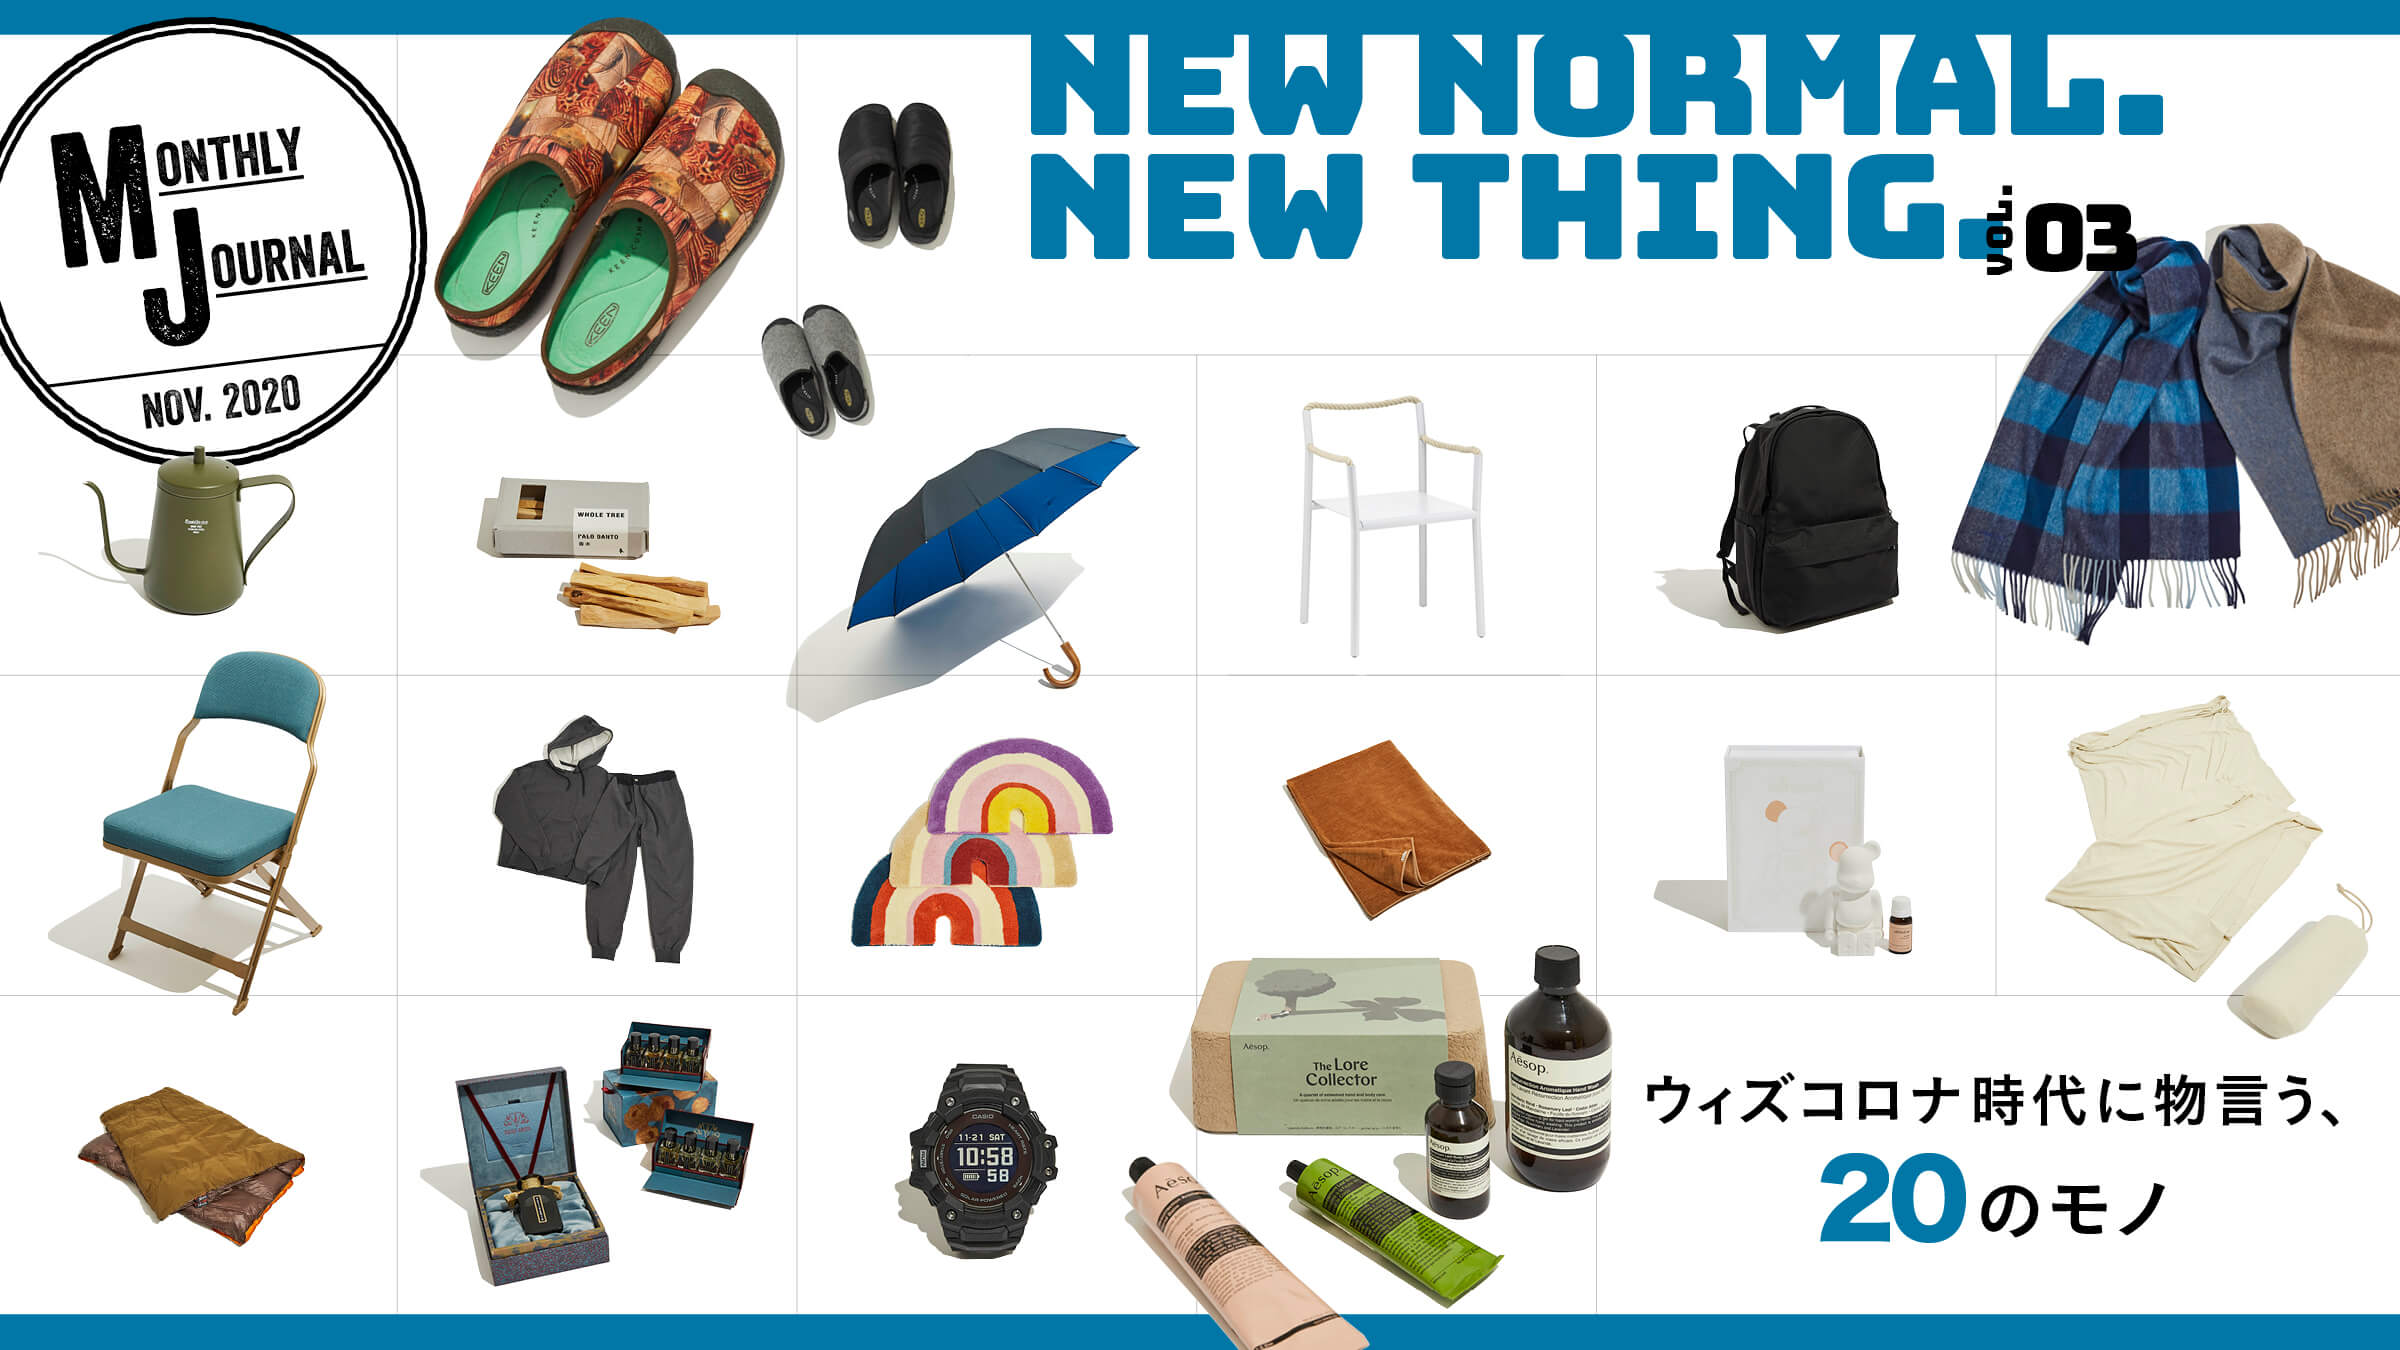 New Normal. New Thing. vol.3ウィズコロナ時代に手にすべき、20の逸品。